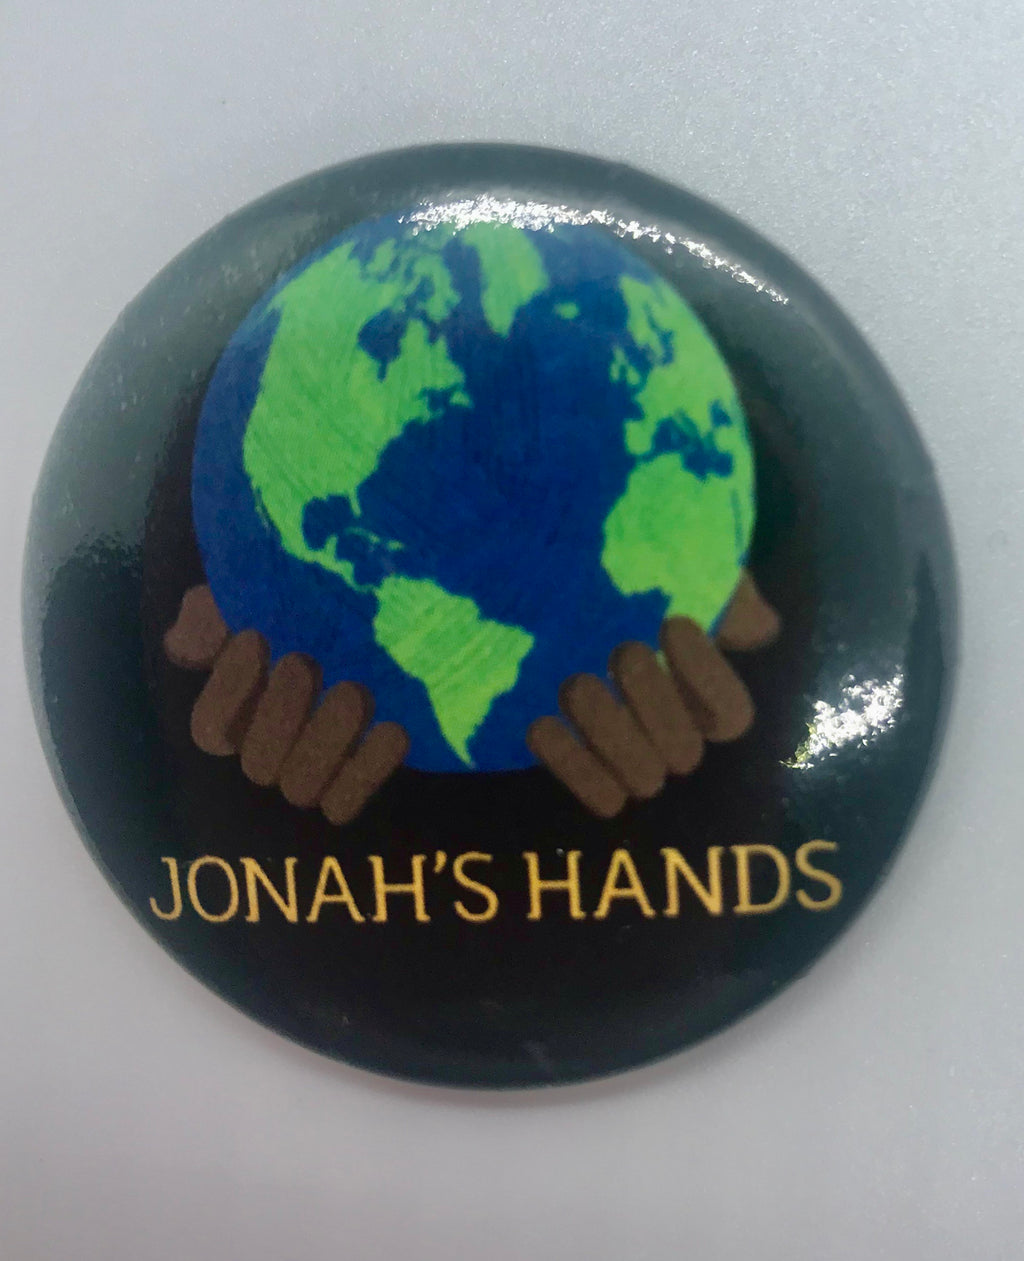 Jonah's Hands Button